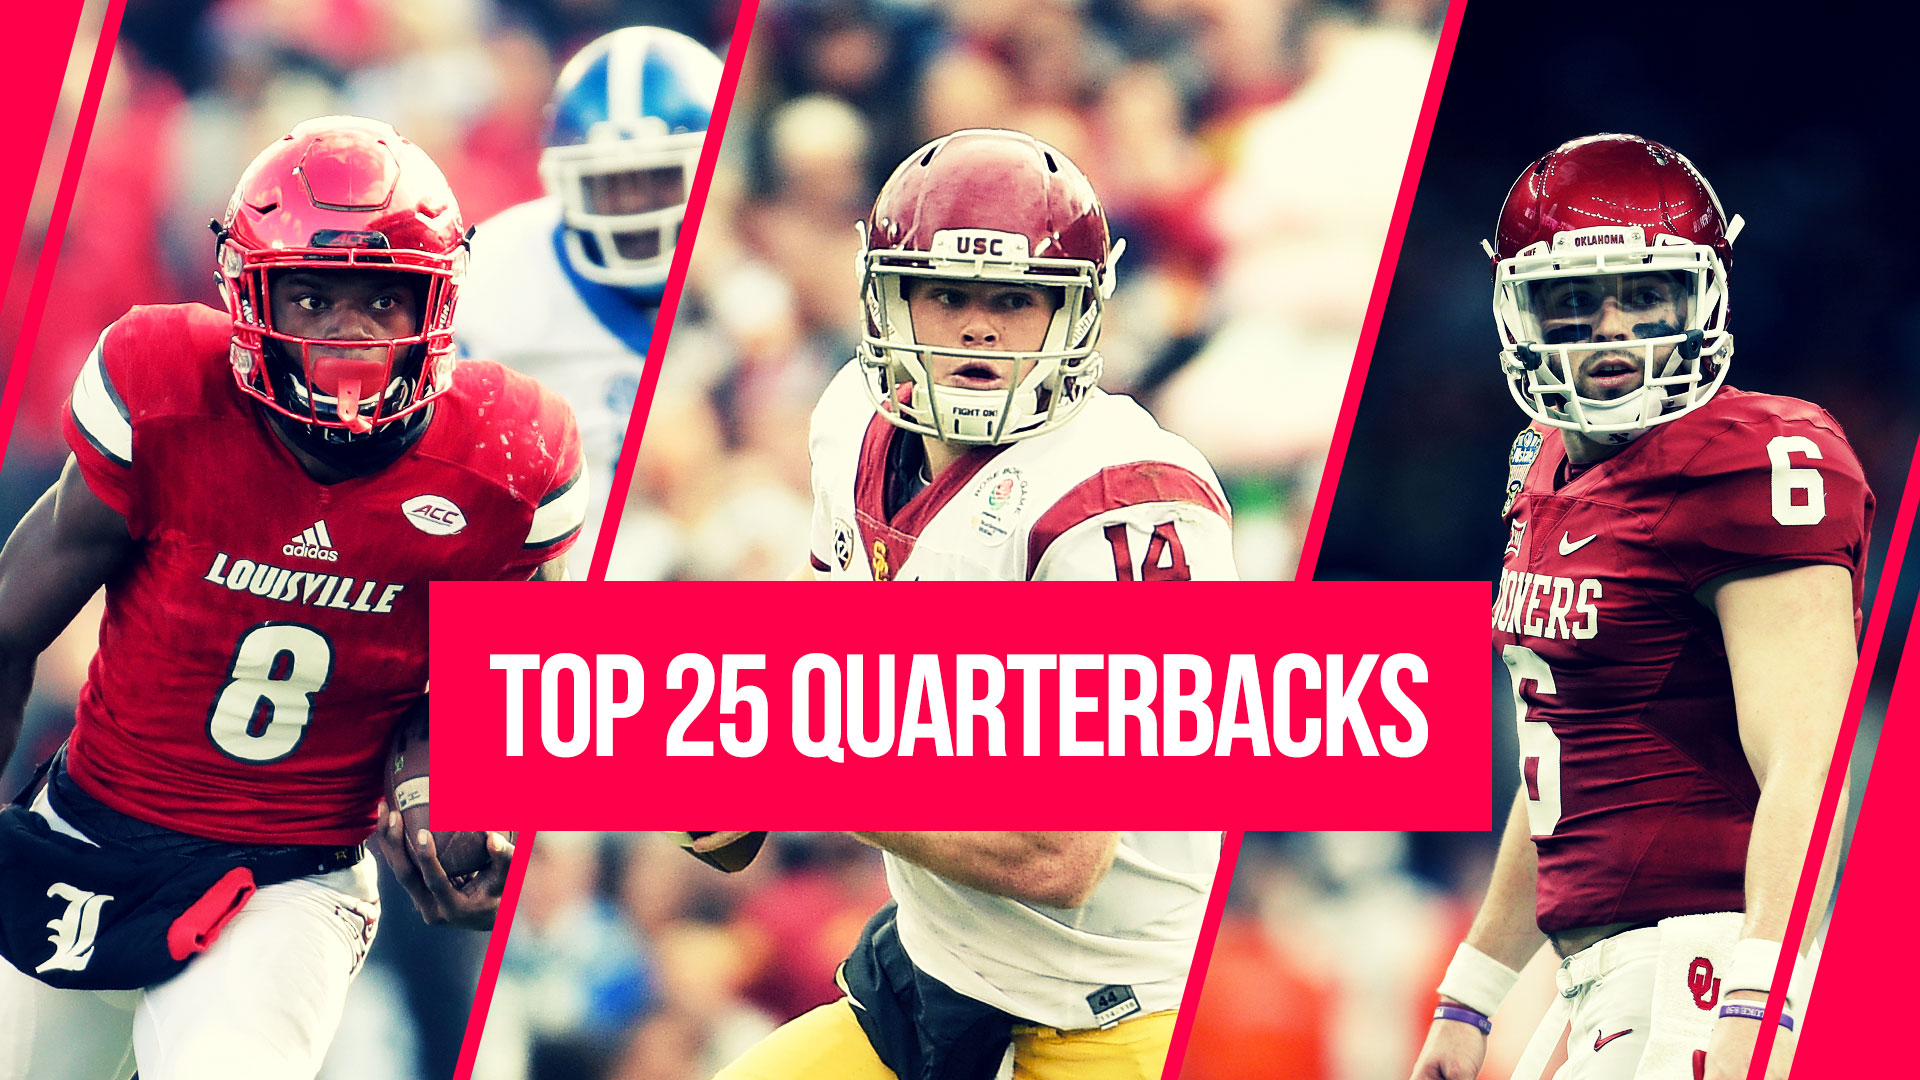 2e9845252f College football s Top 25 quarterbacks for 2017  Lamar Jackson or Sam  Darnold at No. 1